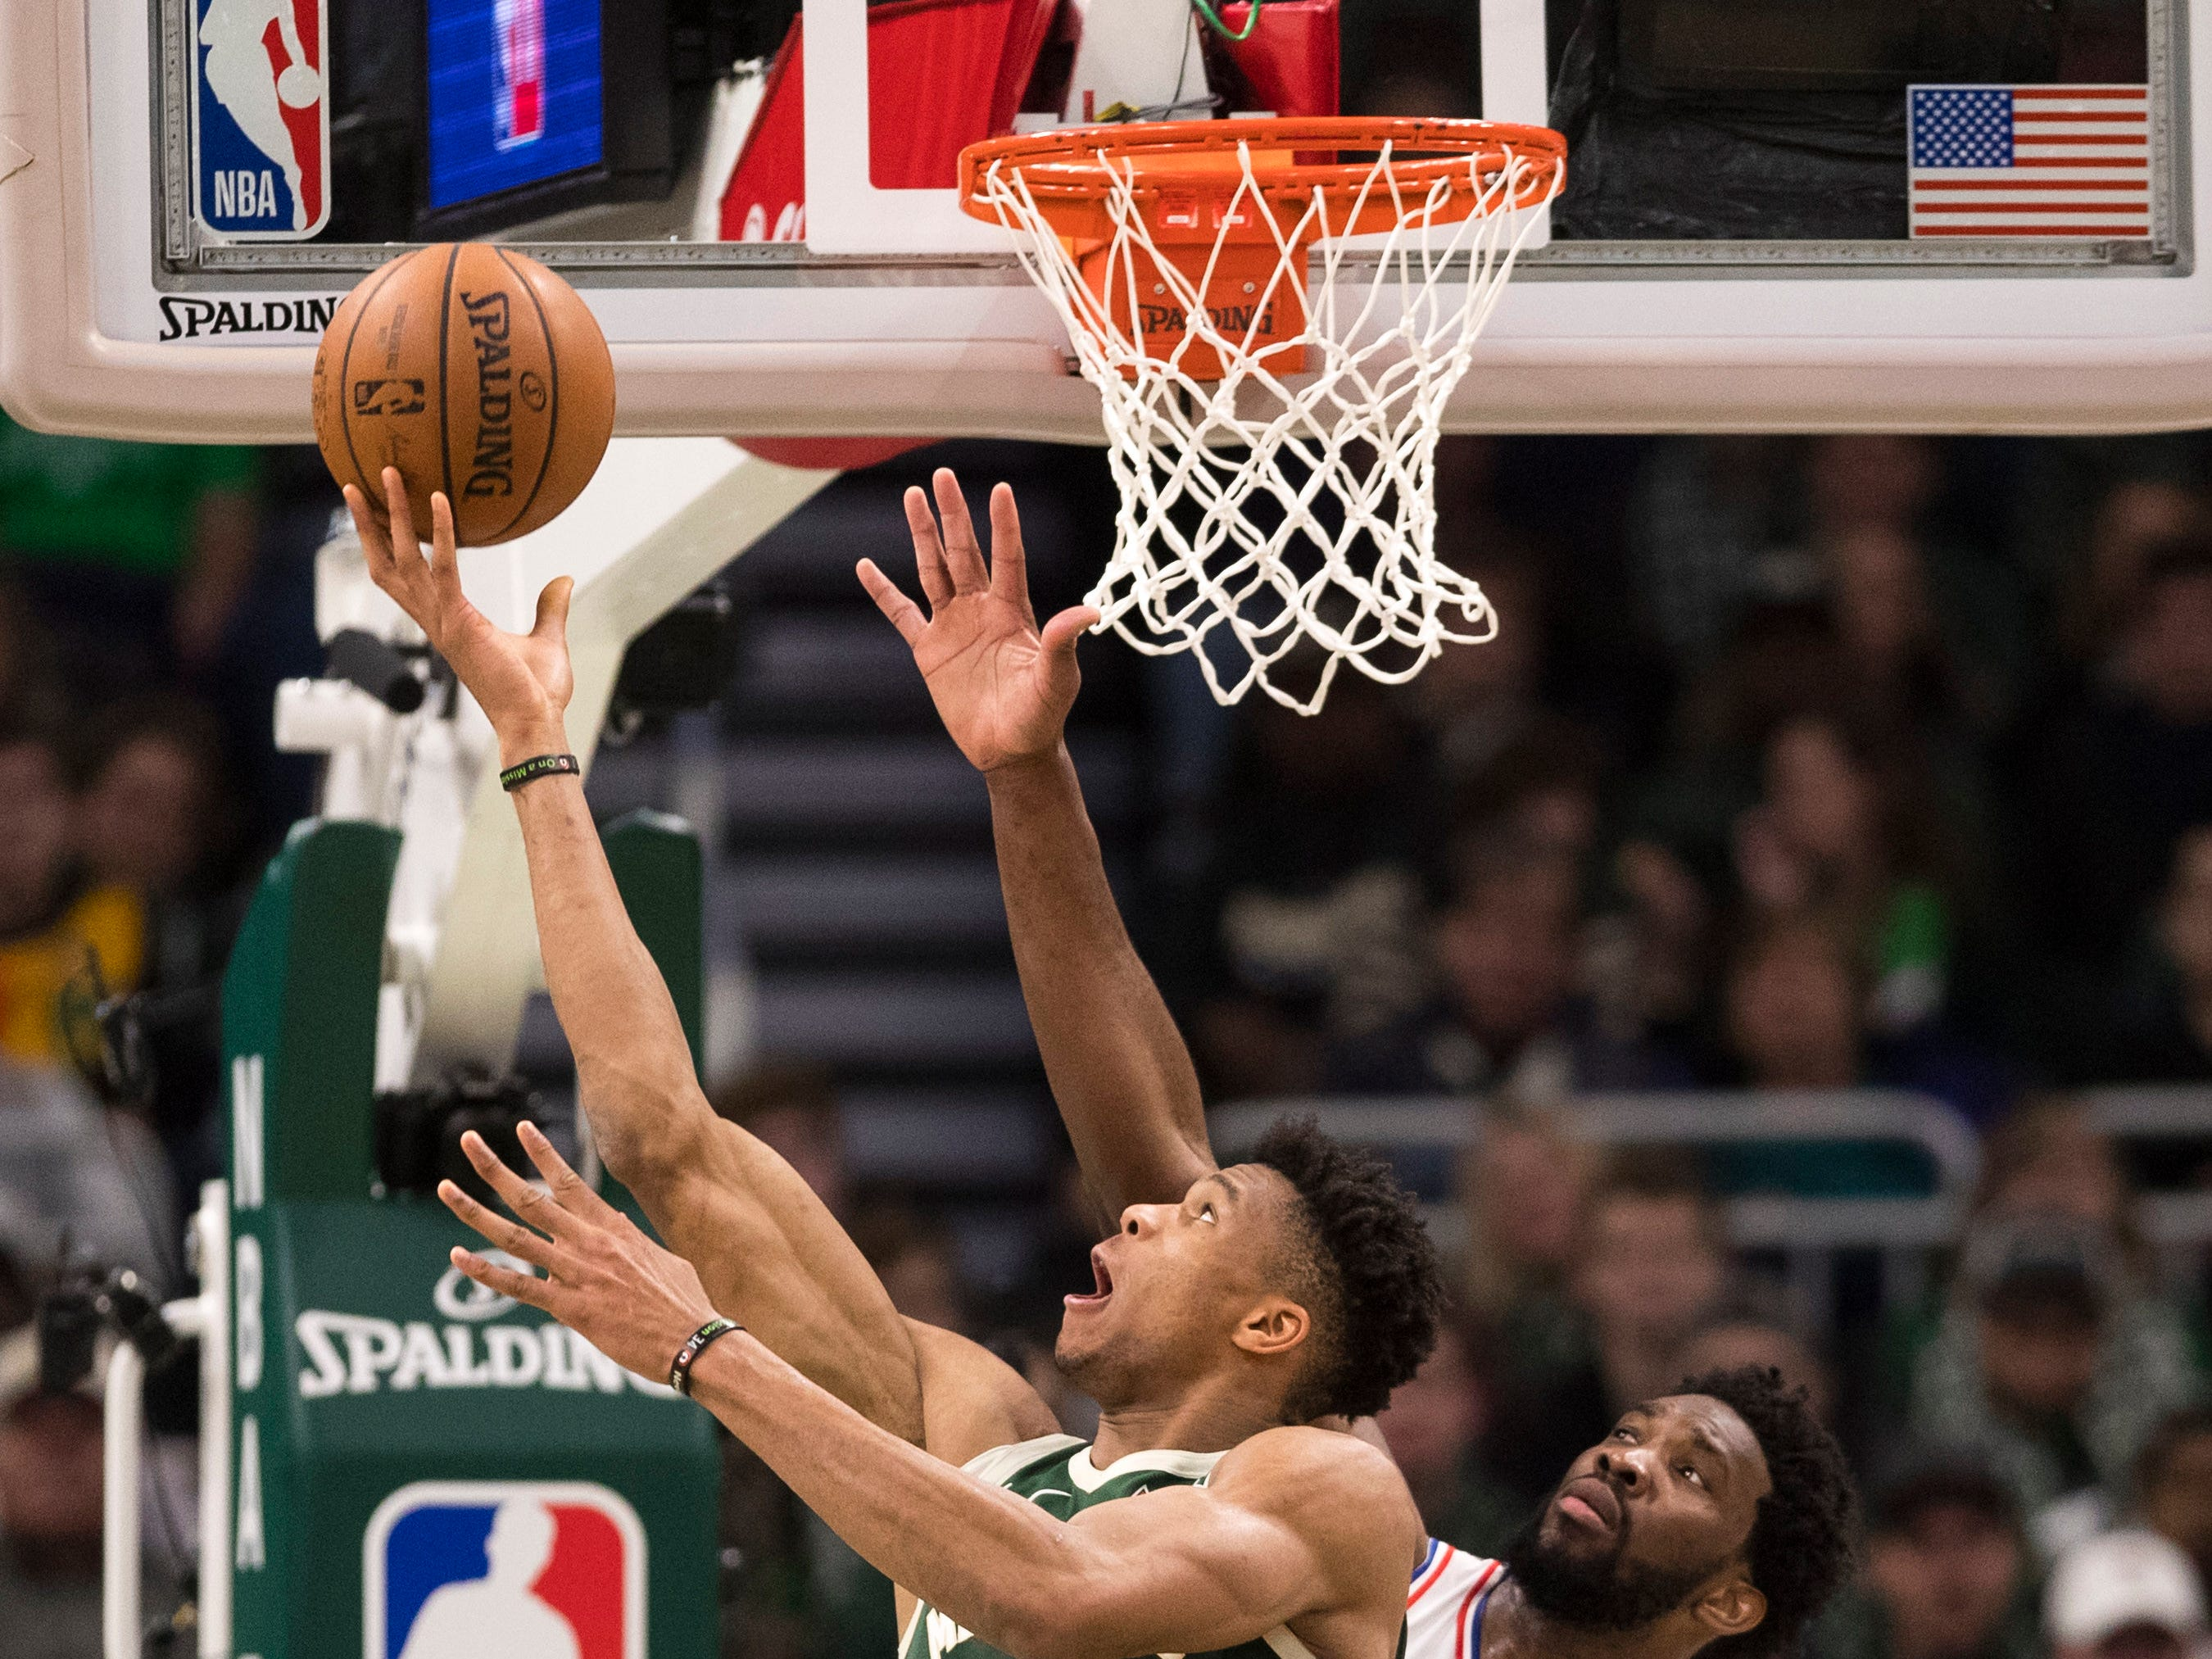 Bucks forward Giannis Antetokounmpo puts up a shot against the 76ers during the fourth quarter.